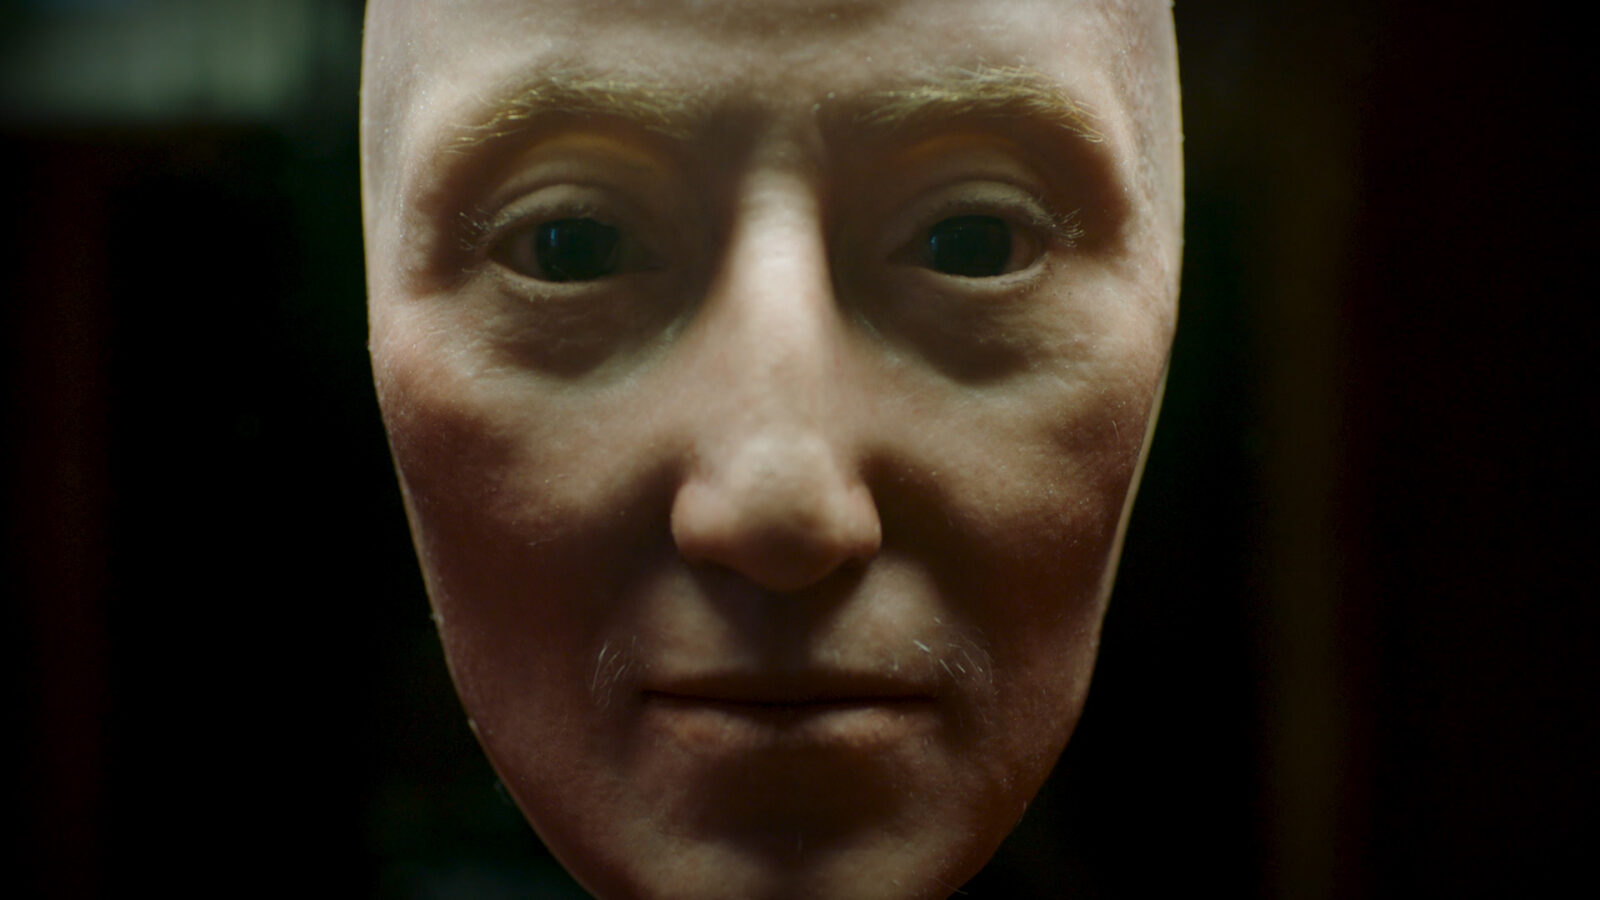 Royal Museums Greenwich // The Mask of Youth